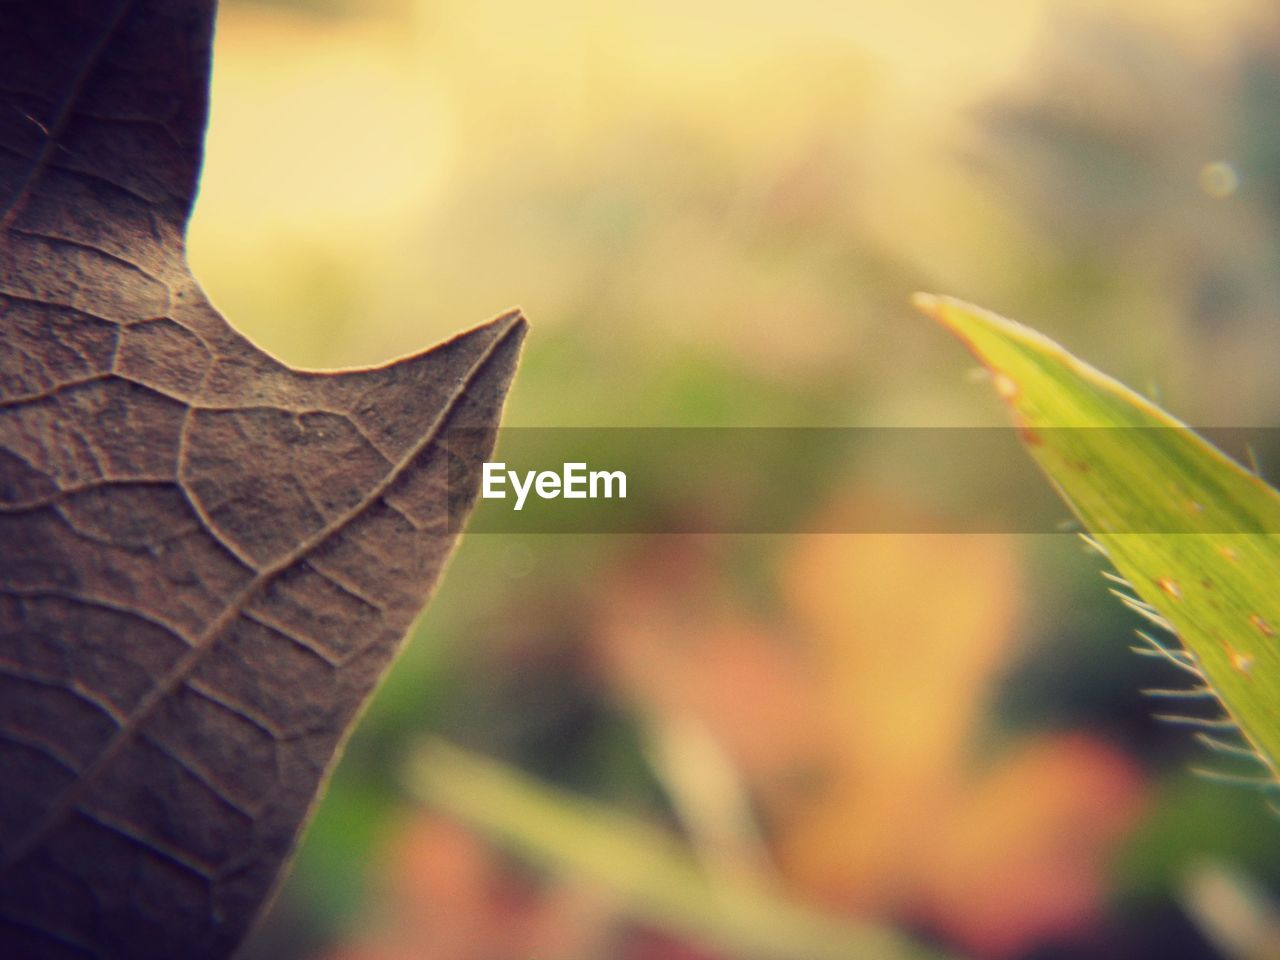 leaf, autumn, change, nature, focus on foreground, close-up, dry, outdoors, day, no people, maple leaf, maple, plant, beauty in nature, fragility